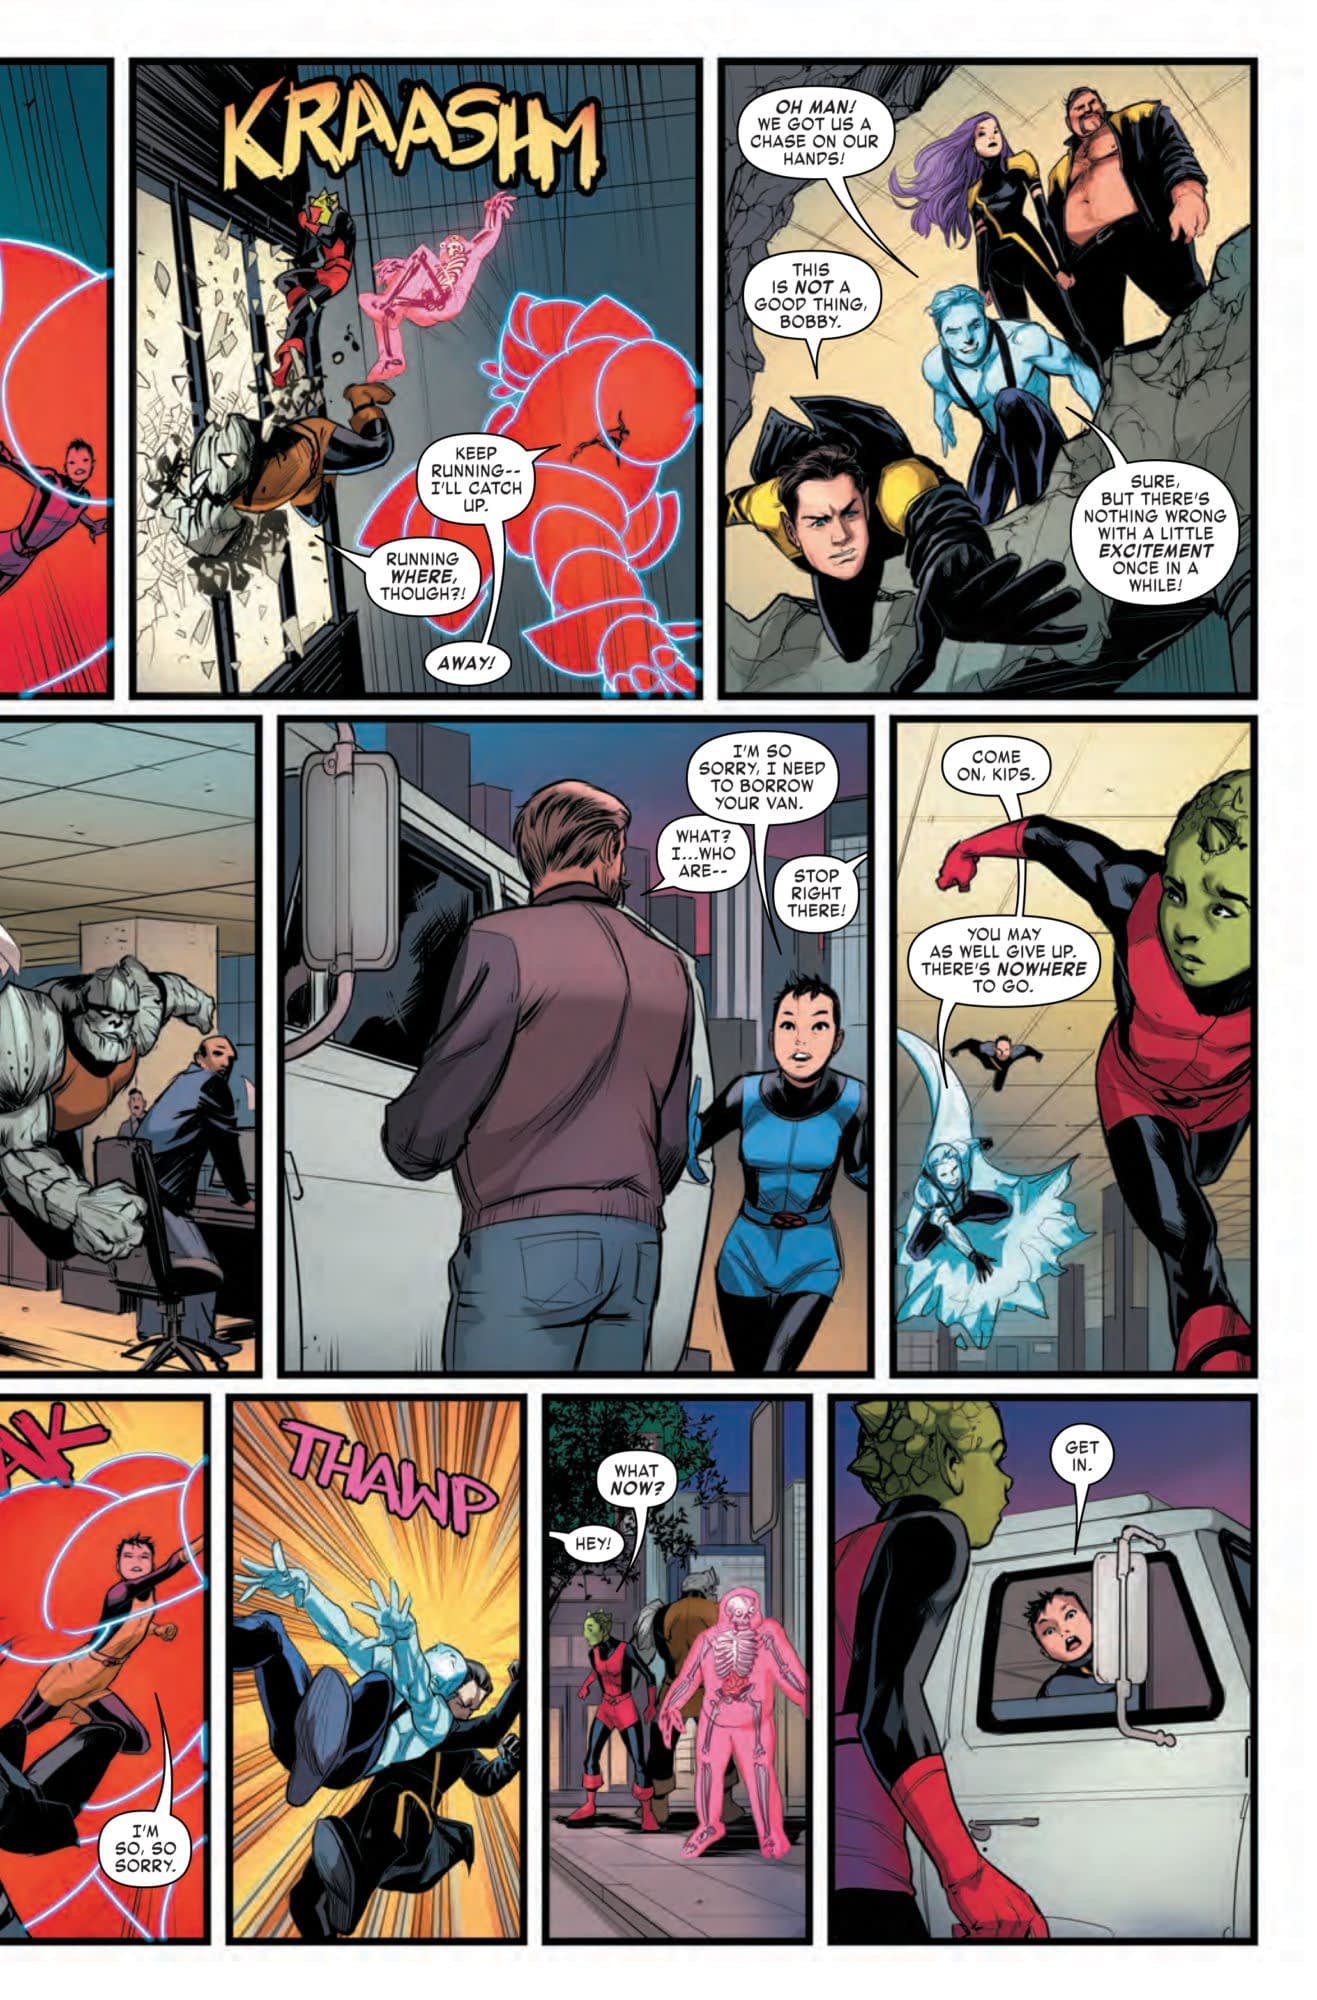 A Close Call for Anole in Age of X-Man: Next Gen #5 (Preview)